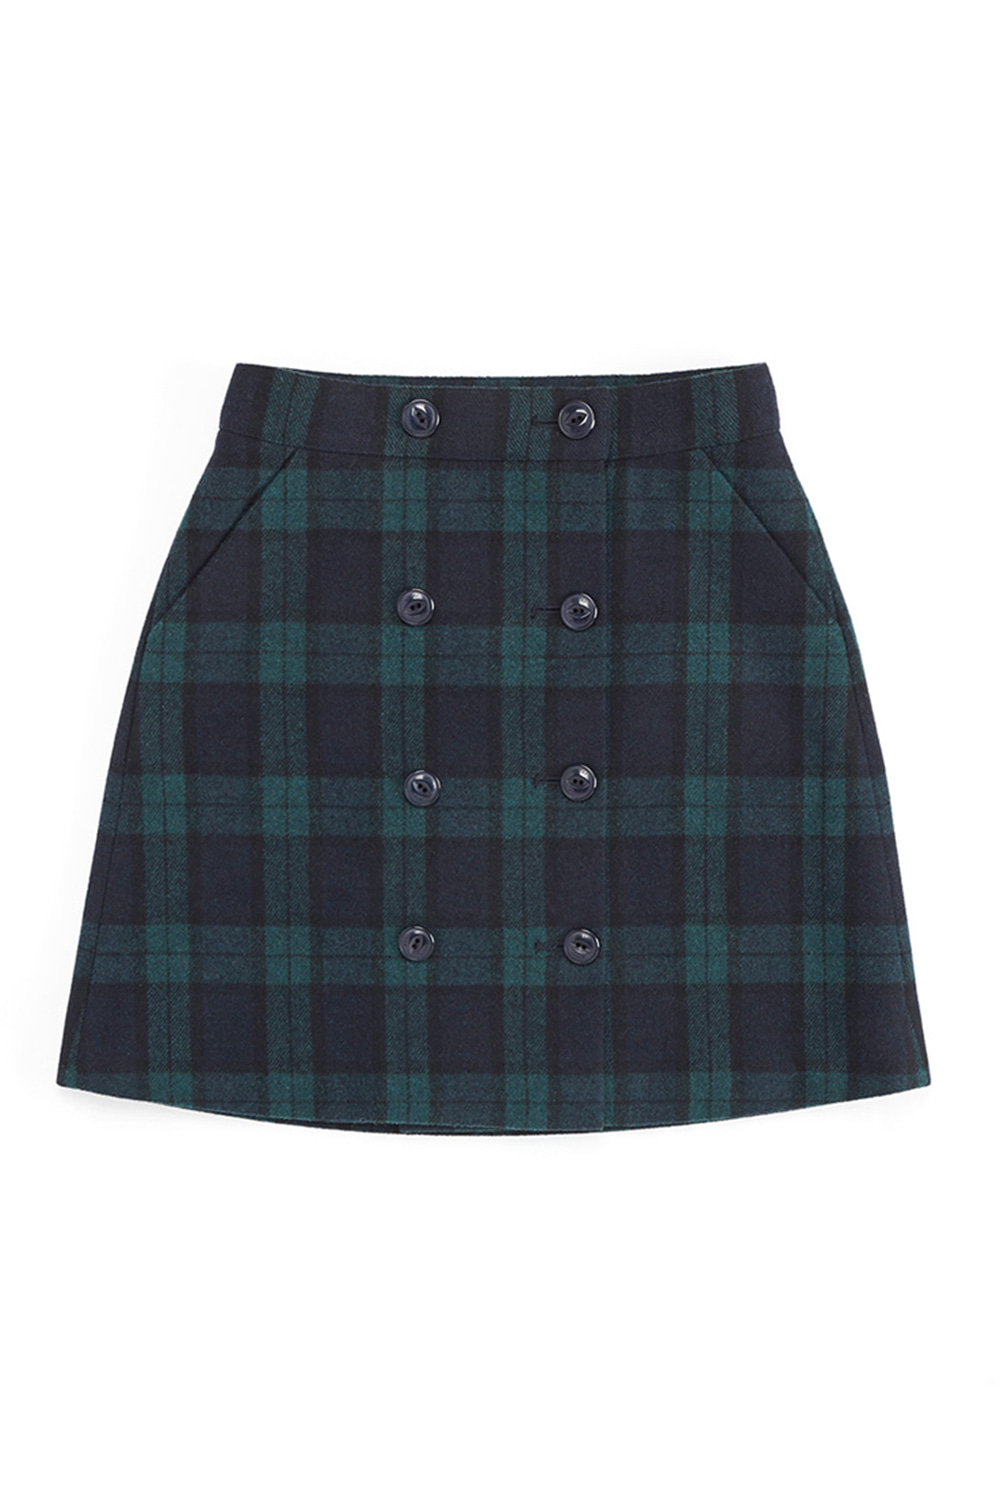 DOUBLE BUTTON-UP SKIRT_navy/green check